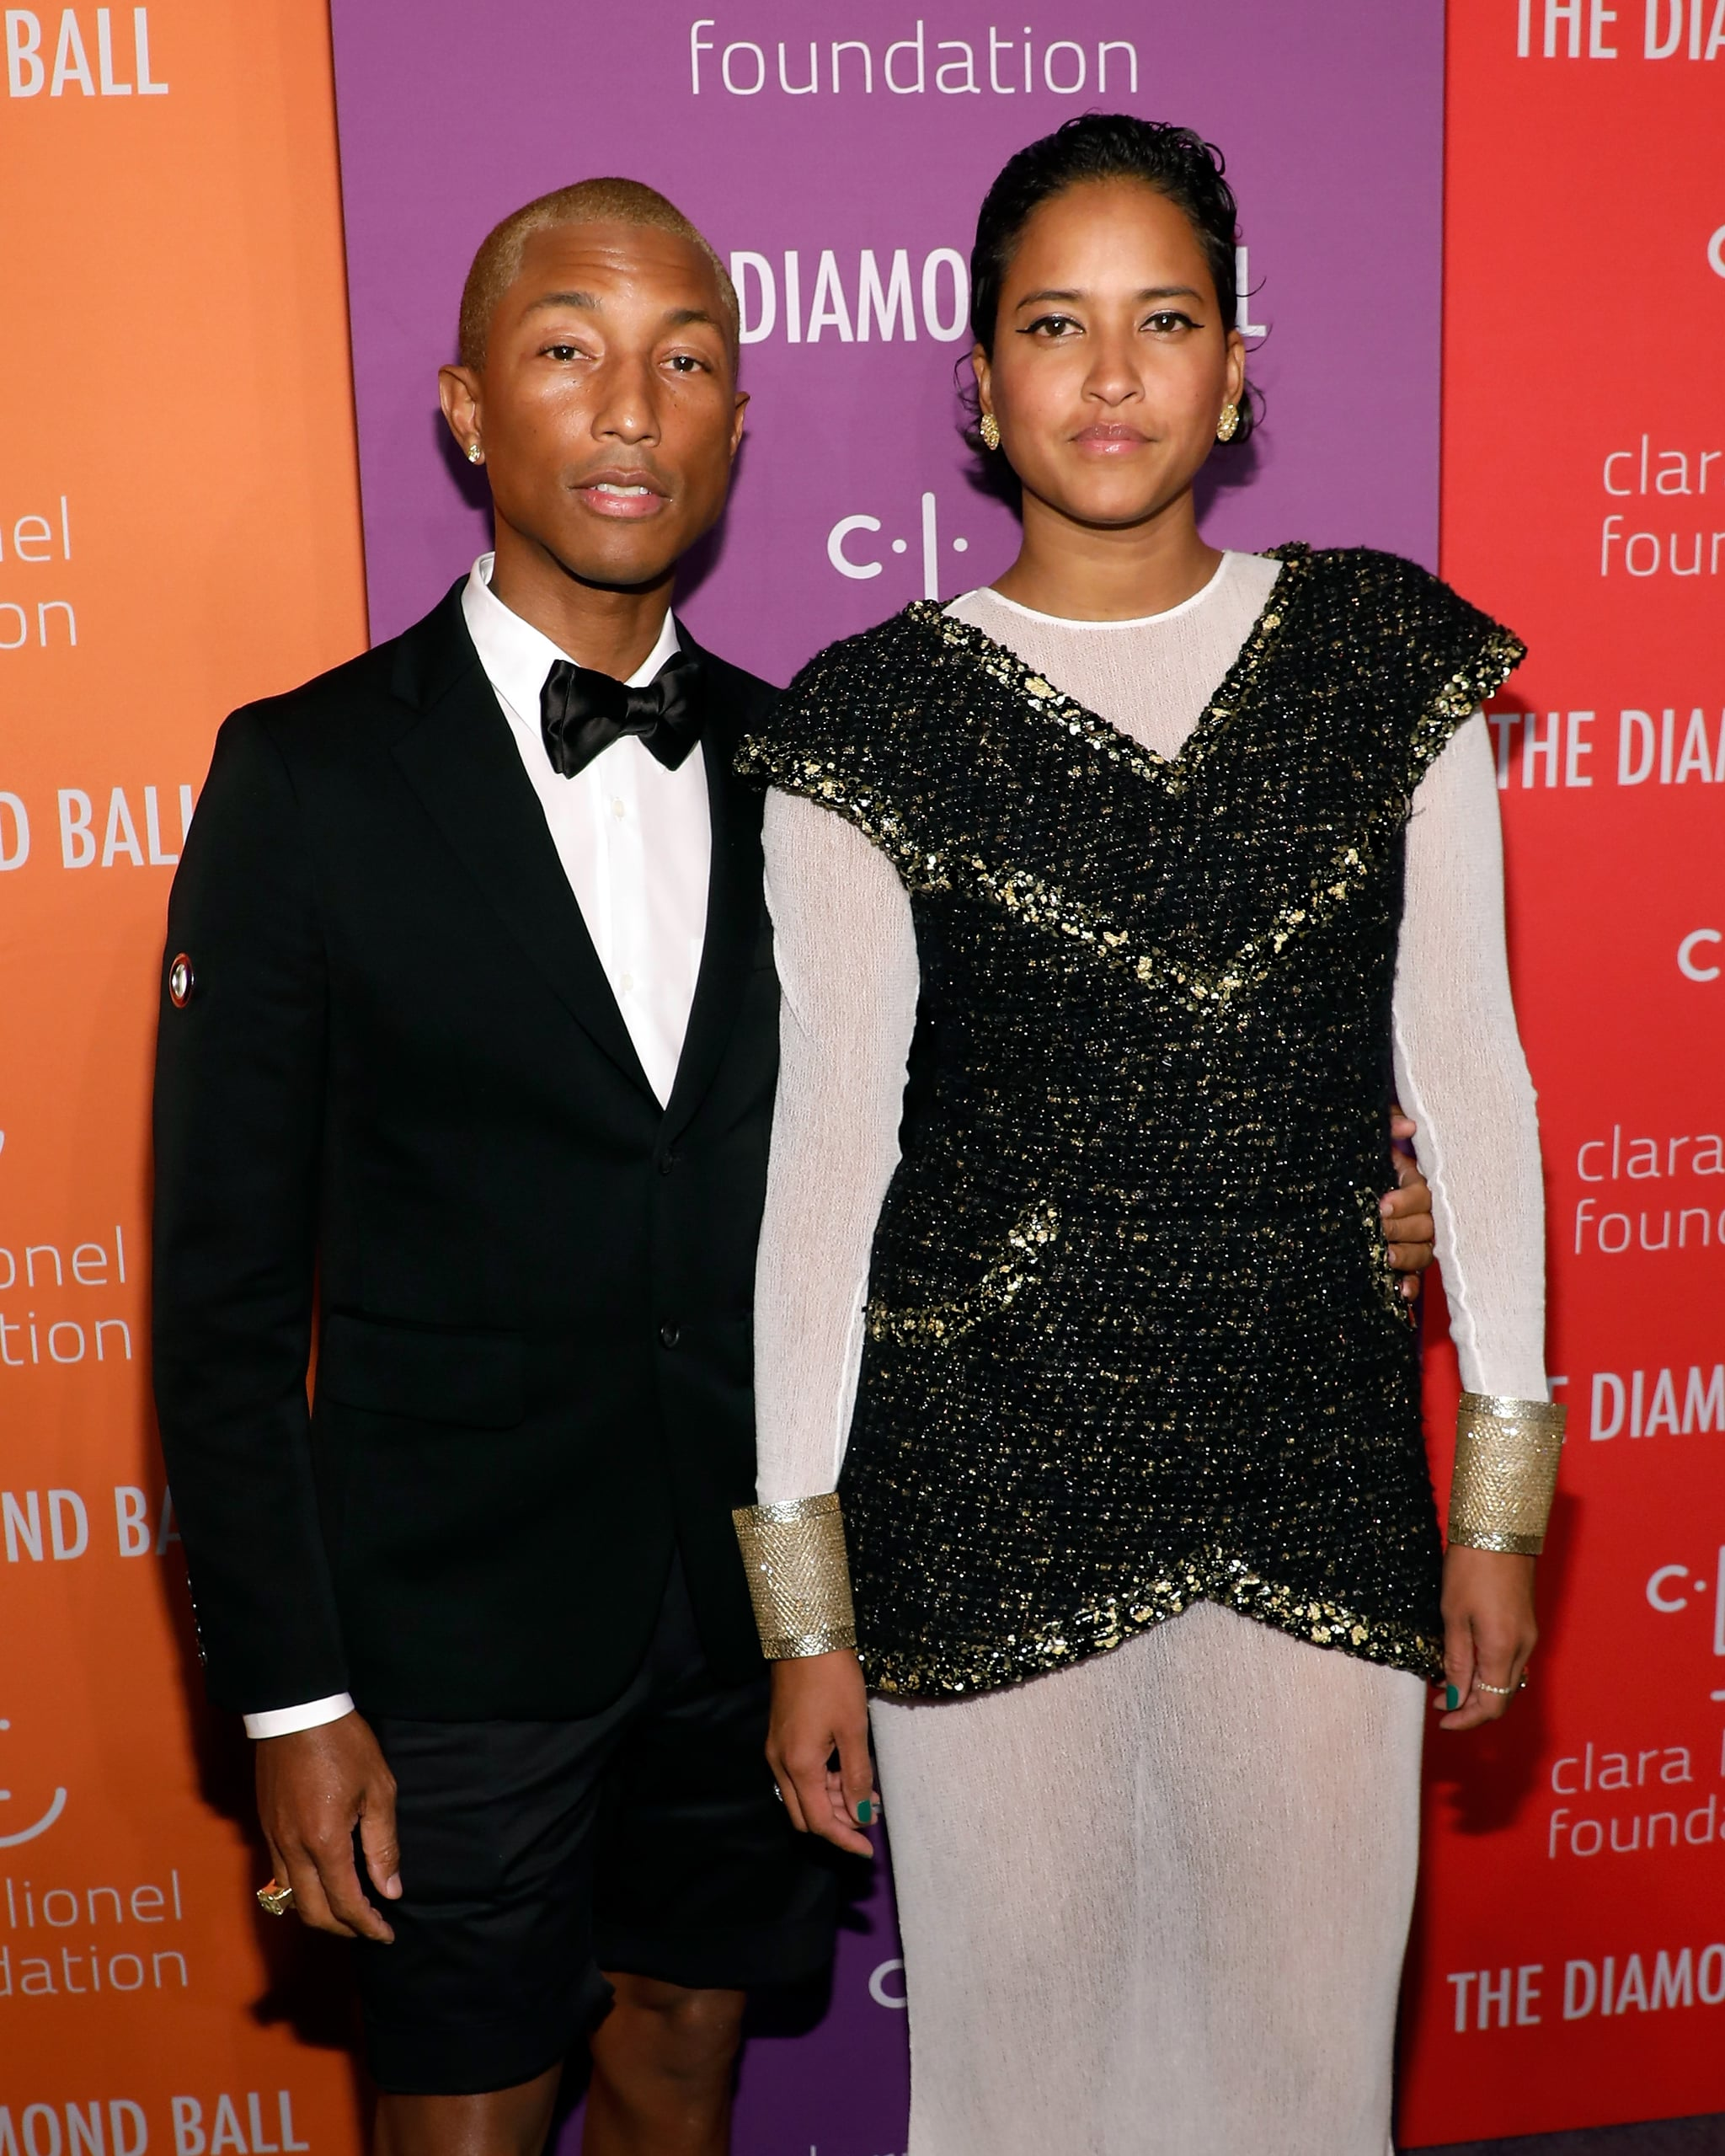 NEW YORK, NEW YORK - SEPTEMBER 12: Pharrell Williams and Helen Lasichanh attend the 5th Annual Diamond Ball benefiting the Clara Lionel Foundation at Cipriani Wall Street on September 12, 2019 in New York City. (Photo by Taylor Hill/WireImage)